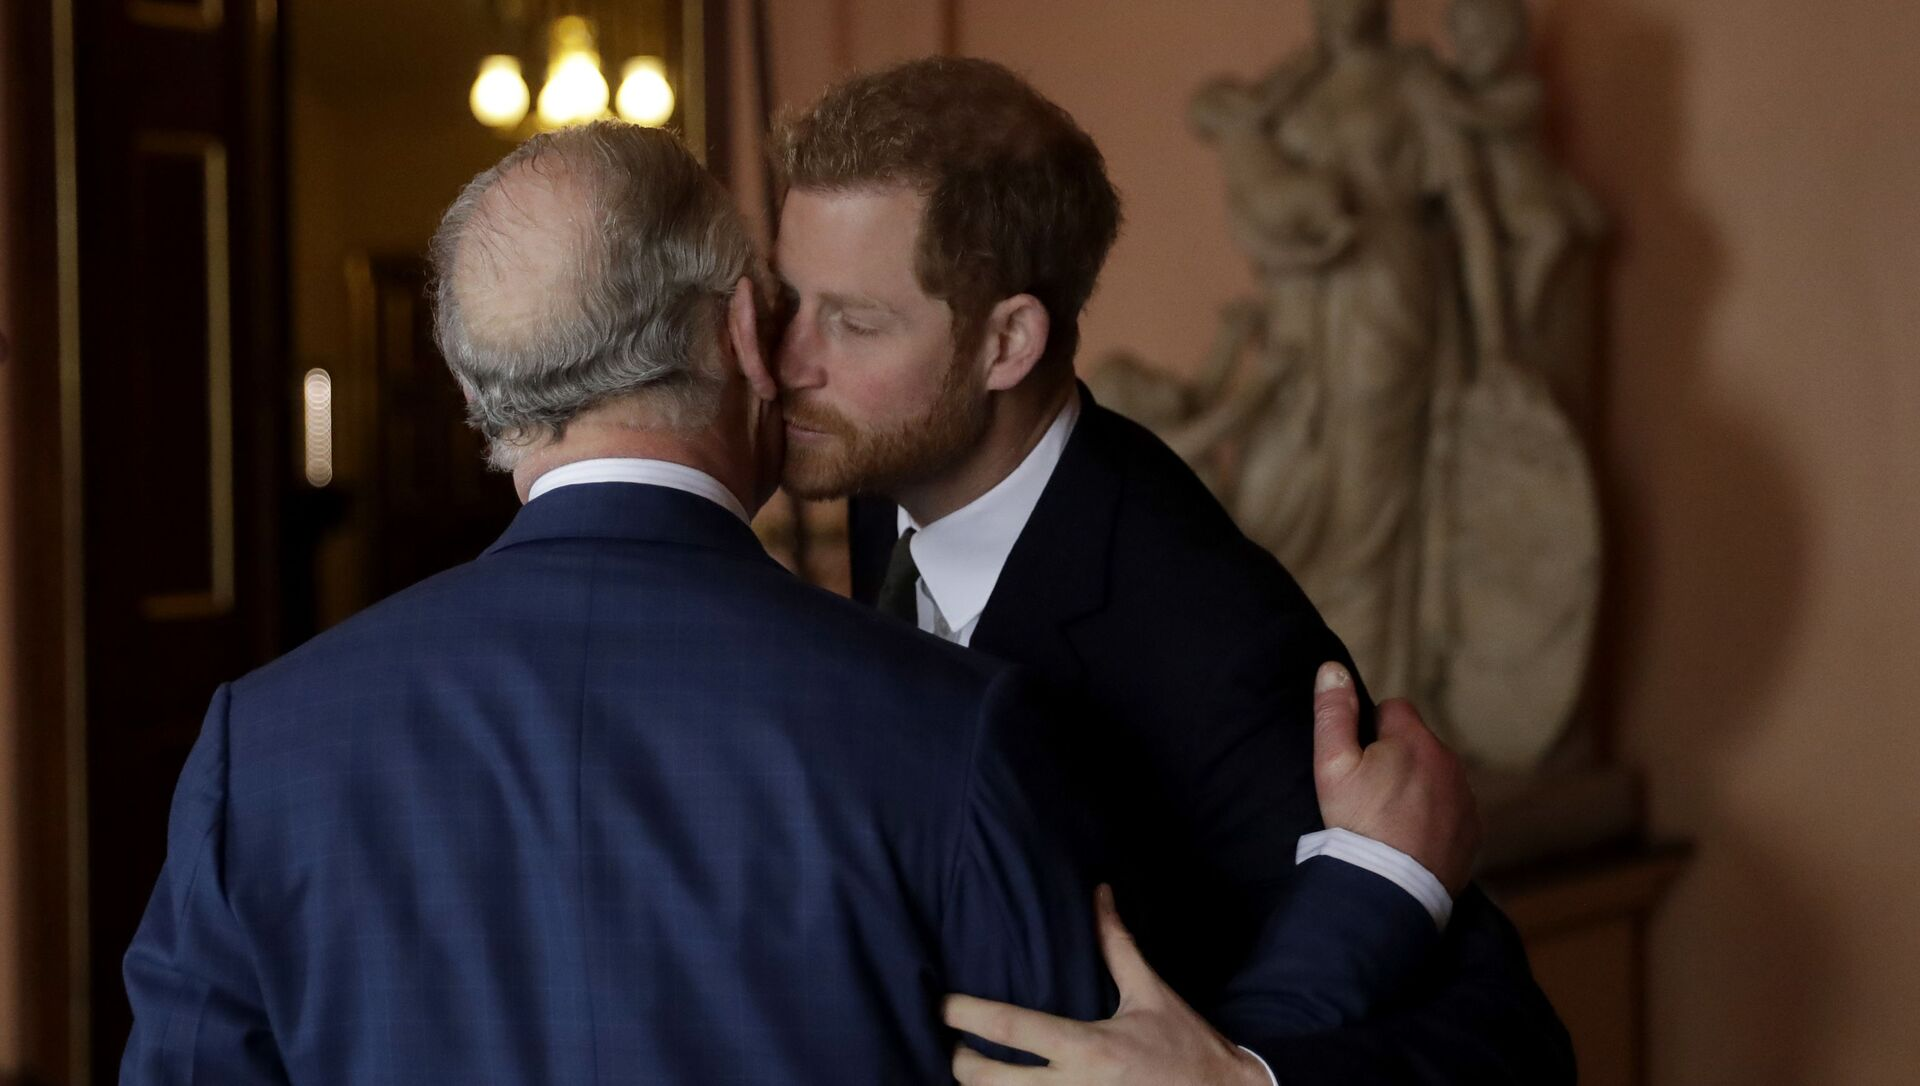 Britain's Prince Harry kisses and greets his father Prince Charles upon their separate arrival to attend a coral reef health and resilience meeting with speeches and a reception with delegates at Fishmongers Hall in London, 14 February 2018 - Sputnik International, 1920, 24.06.2021